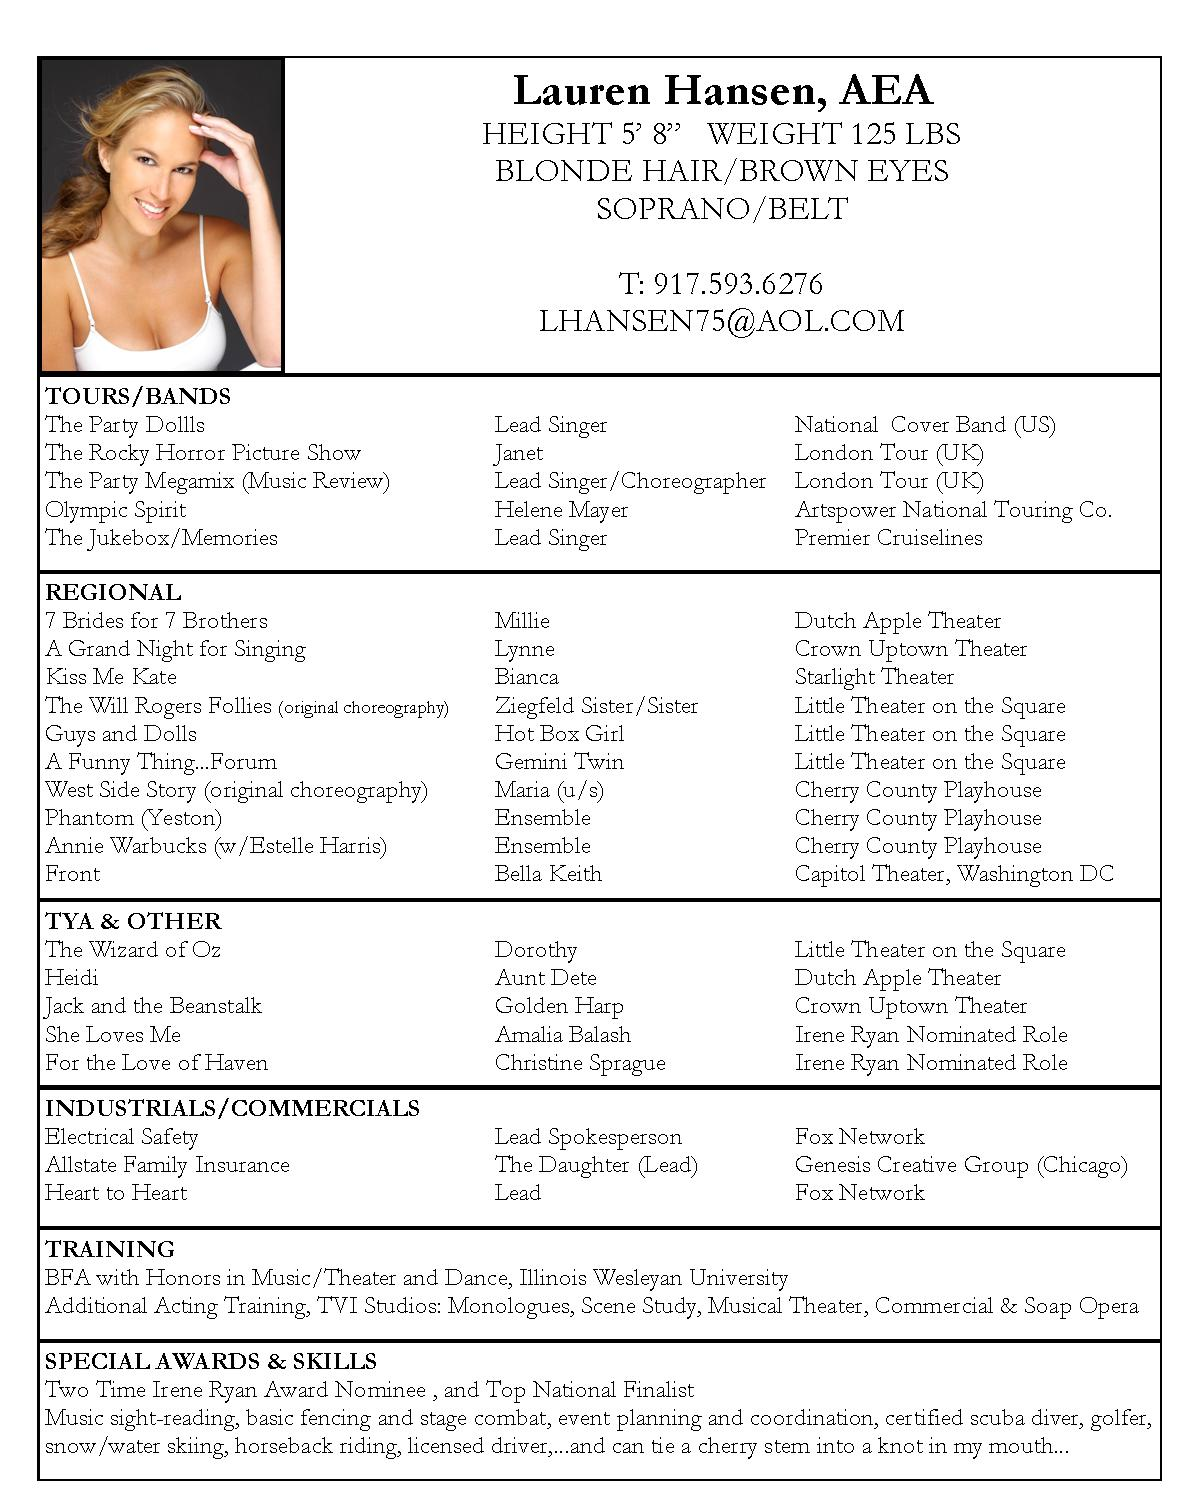 Opposenewapstandardsus  Outstanding Resume For Actors Resume For Acting Actors Acting Resume Template  With Luxury Acting Cv  Beginner Acting Resume Example For Inexperienced  With Enchanting College Resume Builder Also Retail Store Manager Resume In Addition Resume Interests And Professional Resume Services As Well As Create A Resume Online Free Additionally Social Worker Resume From Kelseymarieco With Opposenewapstandardsus  Luxury Resume For Actors Resume For Acting Actors Acting Resume Template  With Enchanting Acting Cv  Beginner Acting Resume Example For Inexperienced  And Outstanding College Resume Builder Also Retail Store Manager Resume In Addition Resume Interests From Kelseymarieco